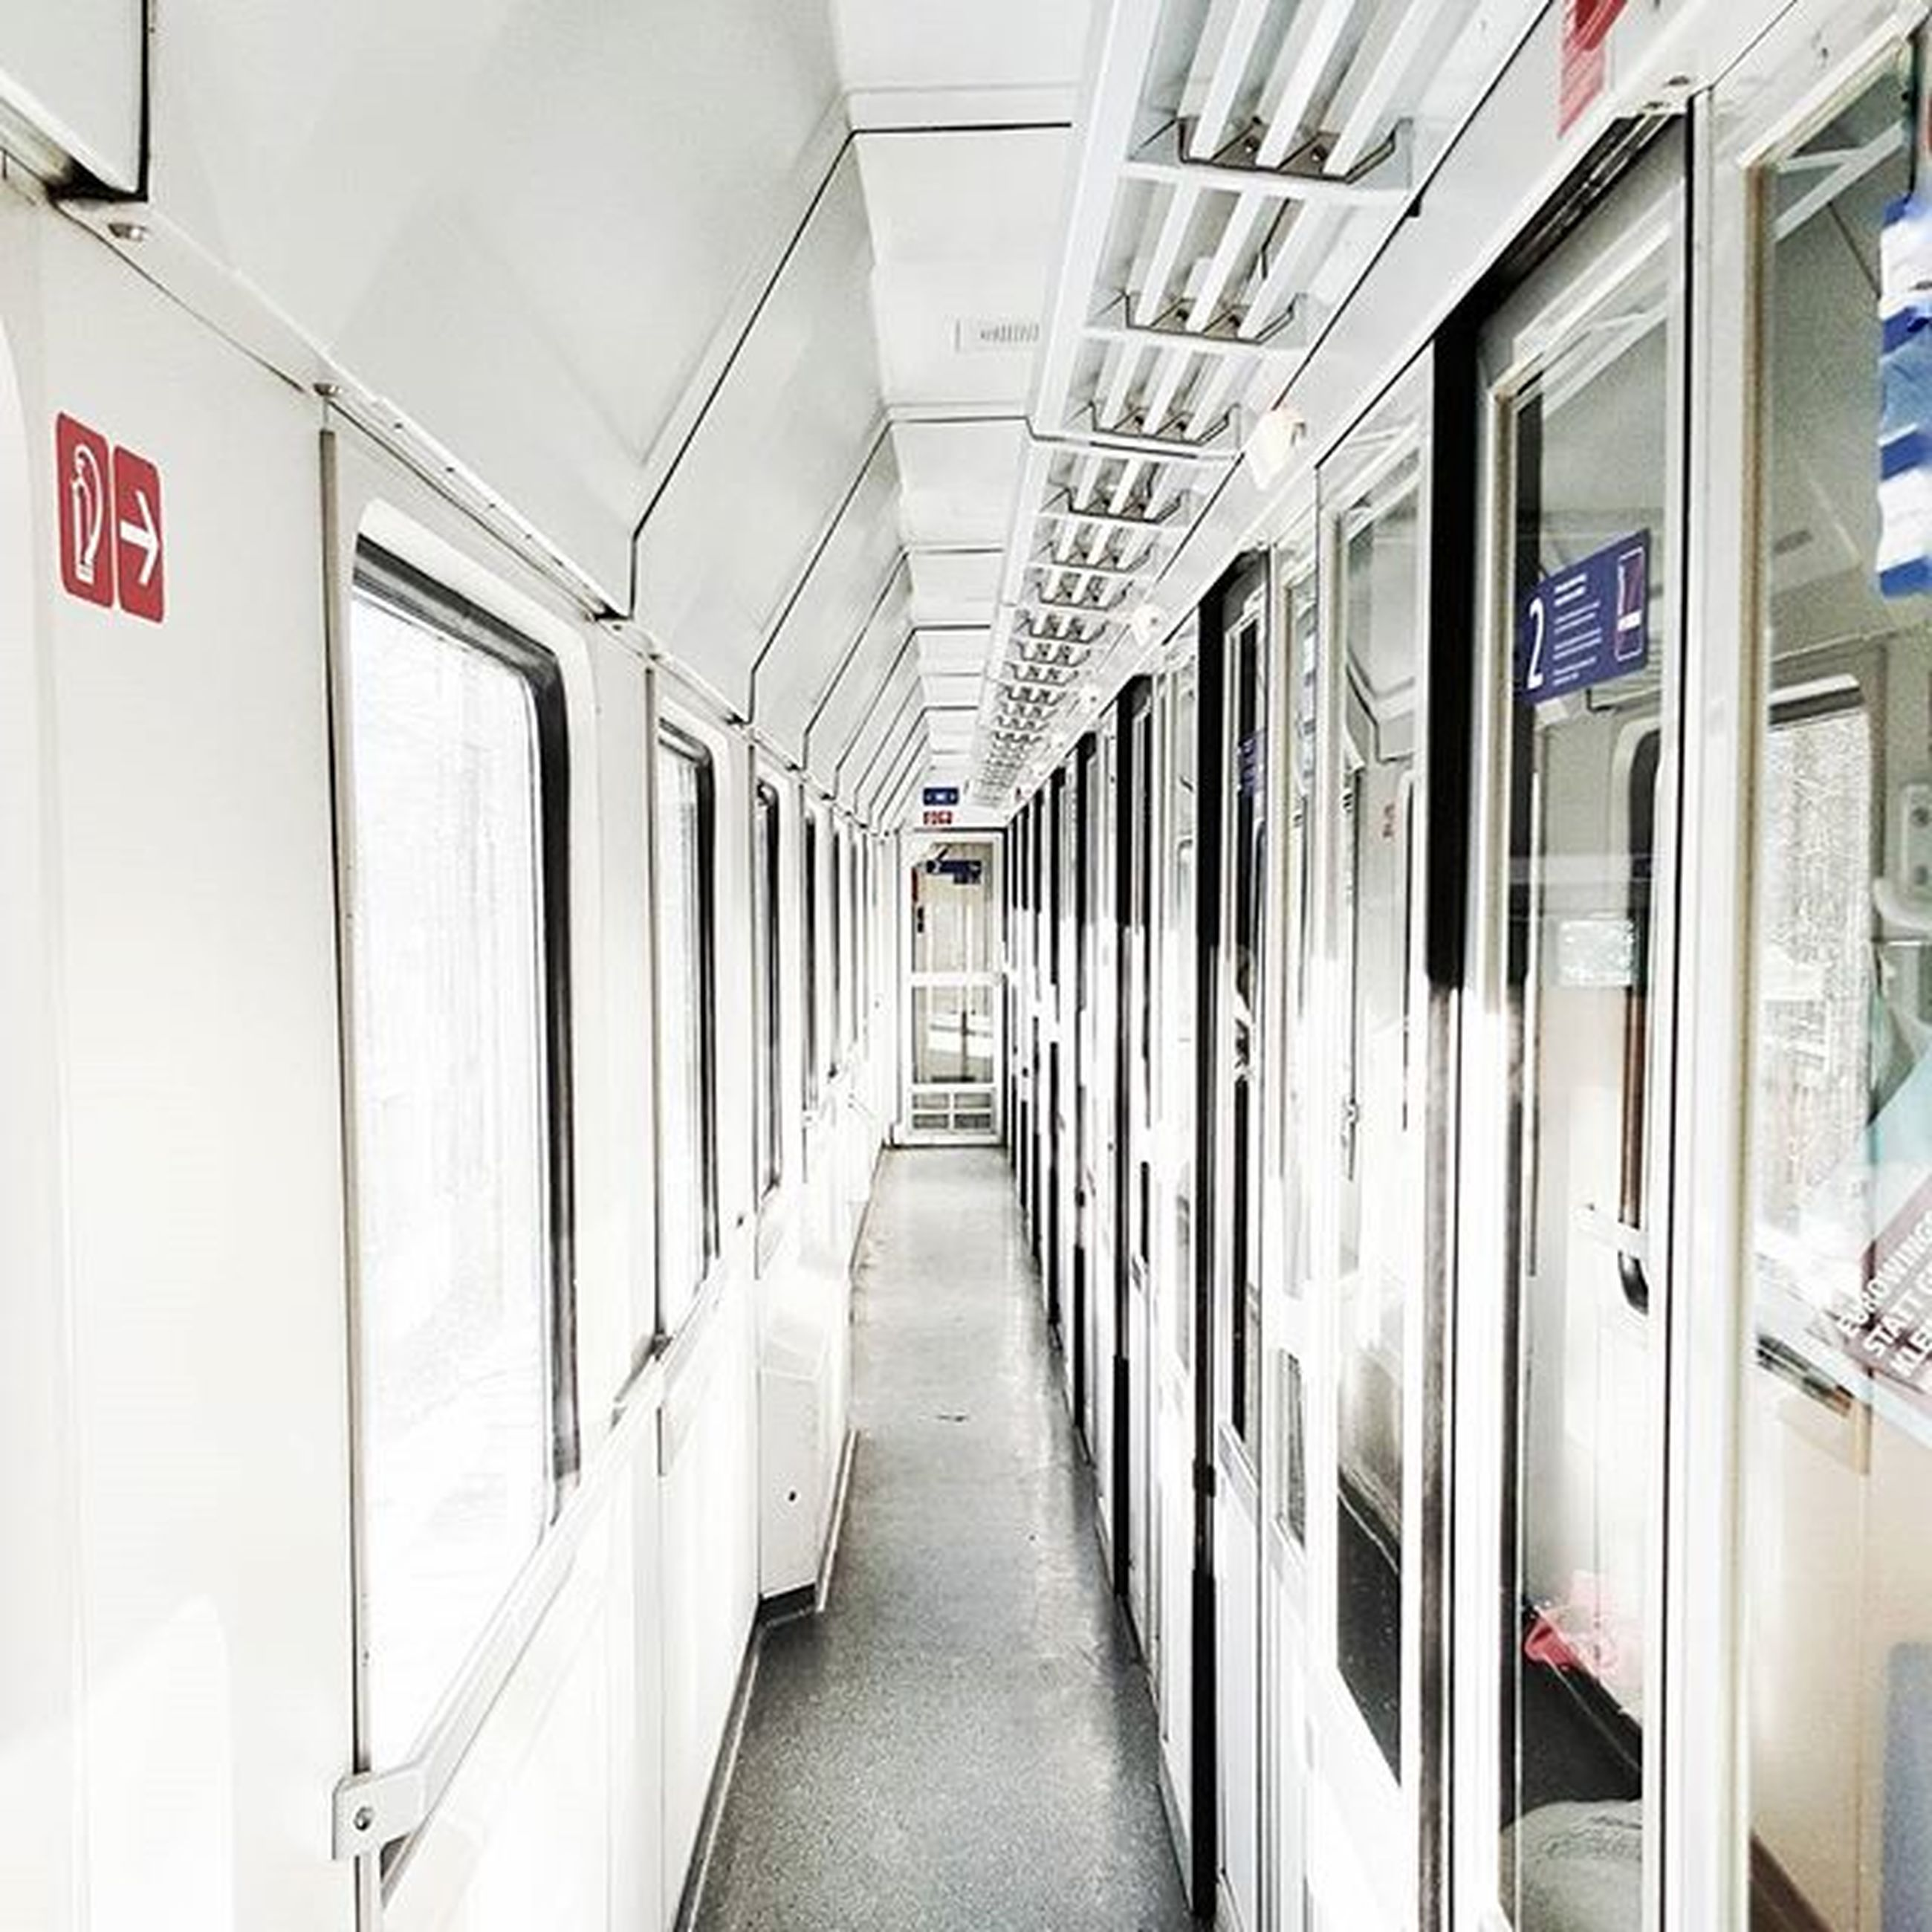 indoors, the way forward, transportation, architecture, built structure, empty, diminishing perspective, narrow, corridor, ceiling, public transportation, vanishing point, absence, rail transportation, long, in a row, railroad station platform, subway, railroad station, illuminated